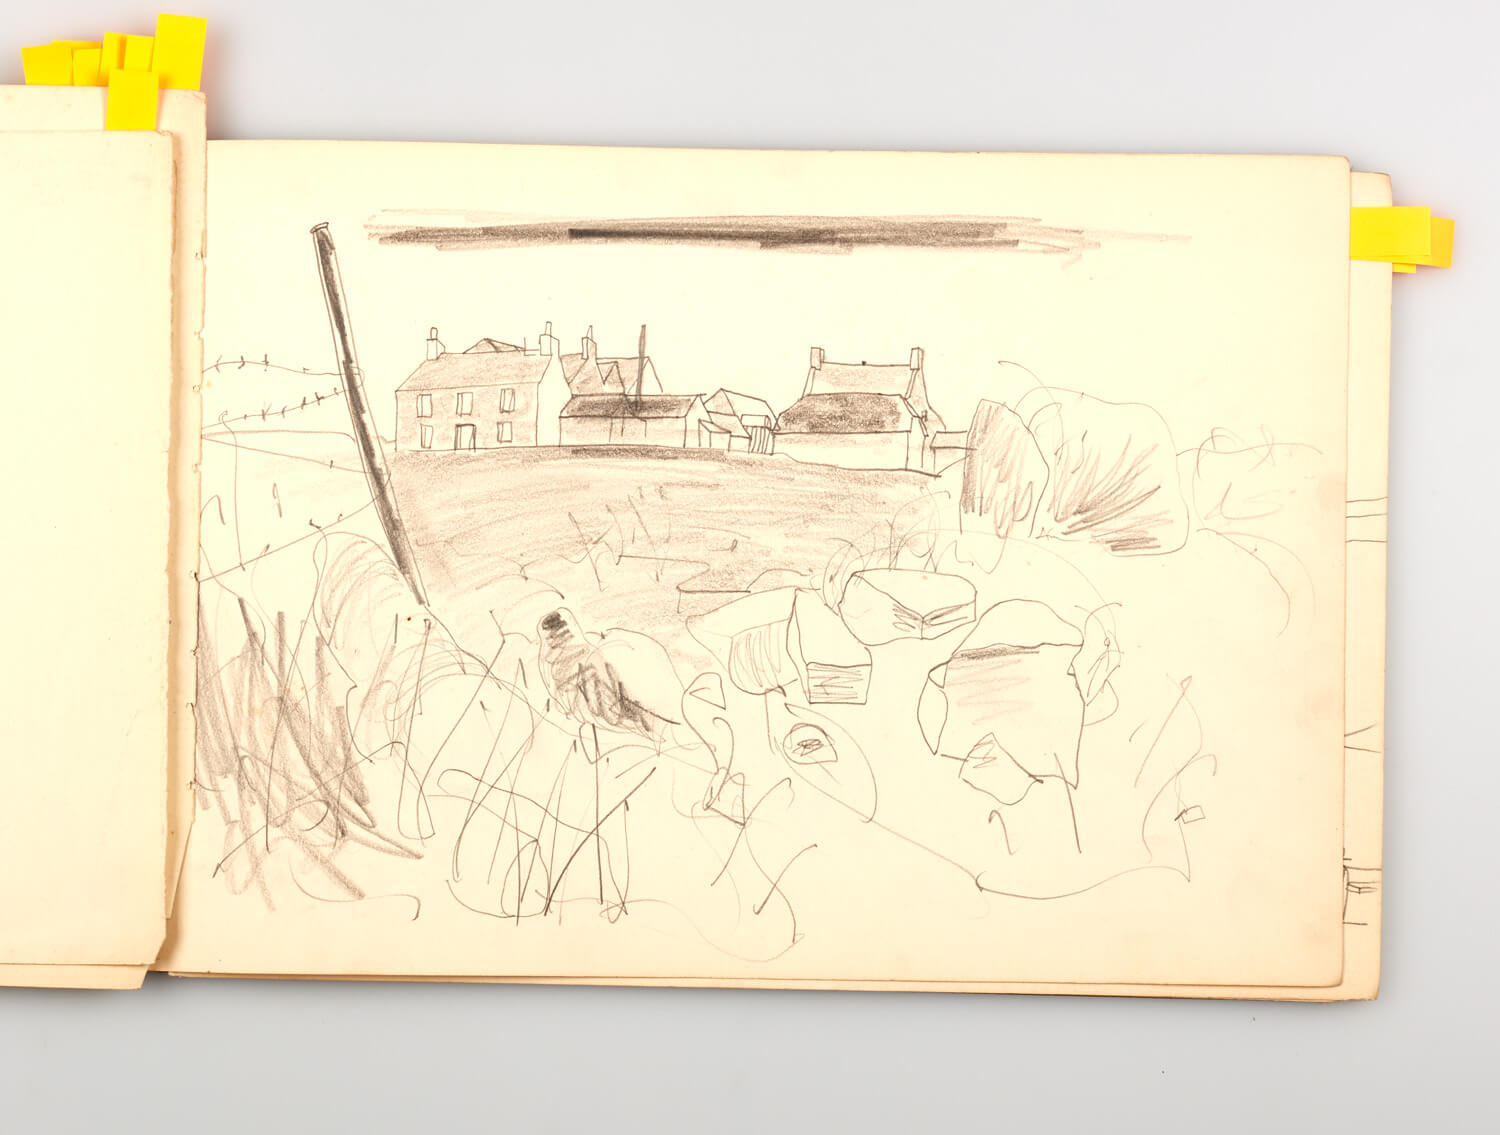 JB283 - Cornish Sketch Book 1948 - 1948 - 25 x 36.5 cm - Pencil